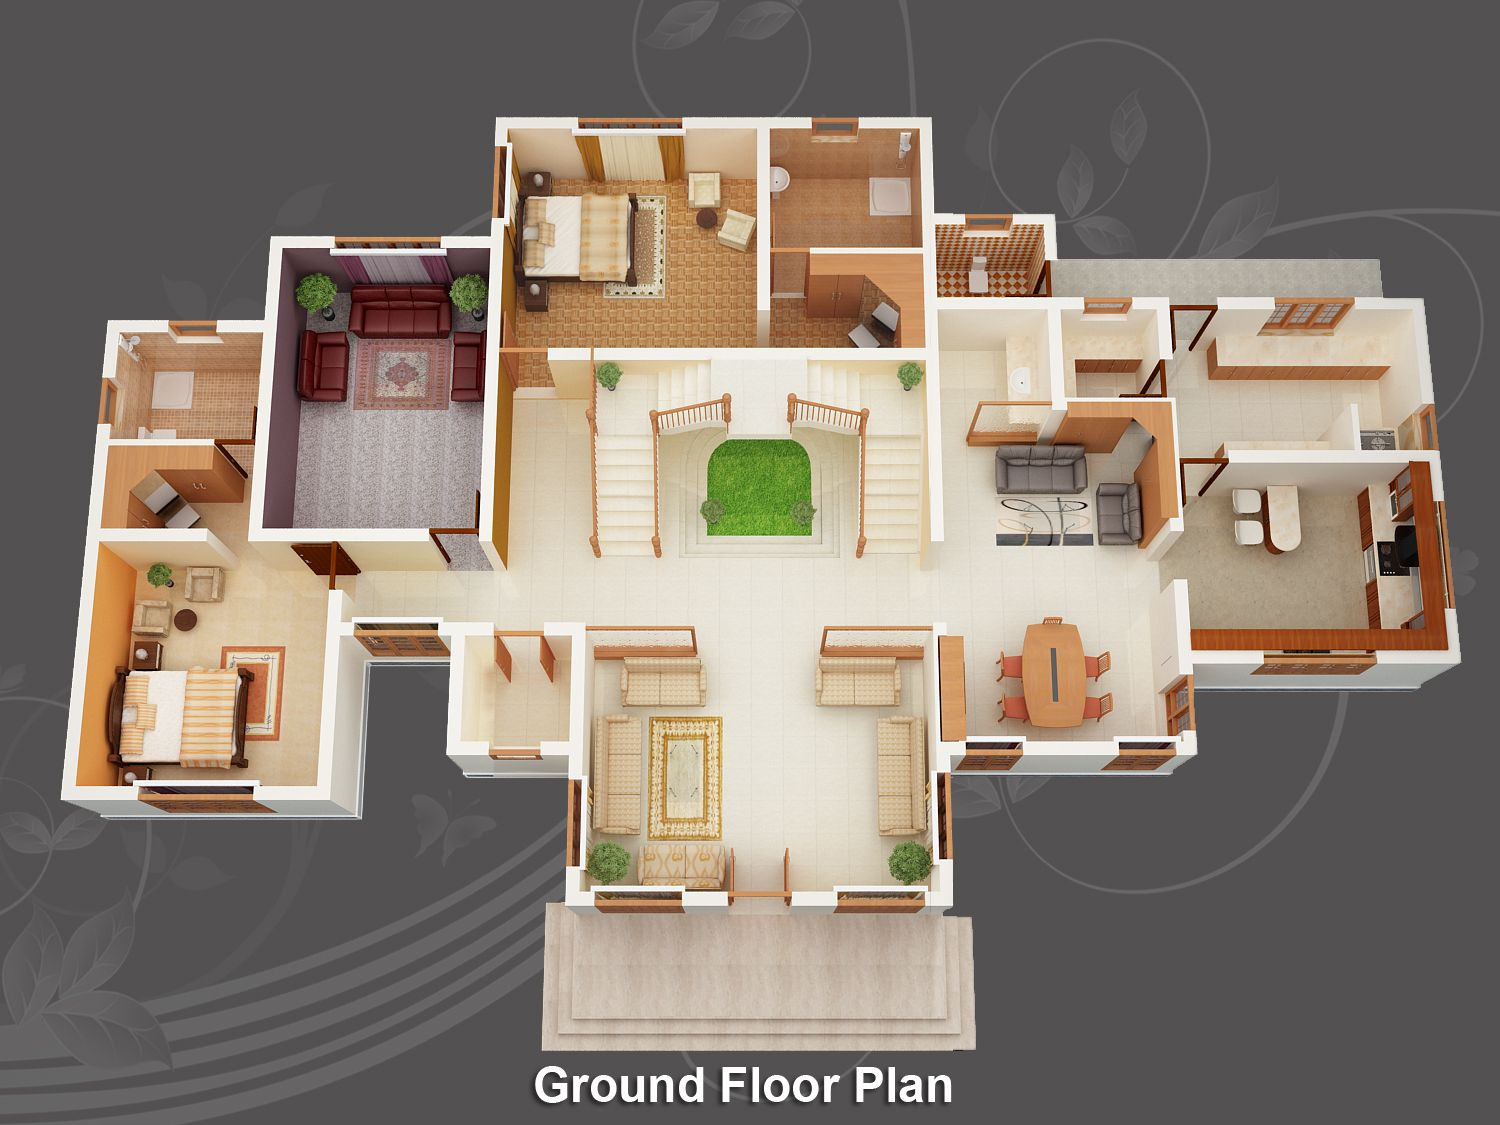 Image for free home design plans 3d wallpaper desktop for 3d home floor plan design